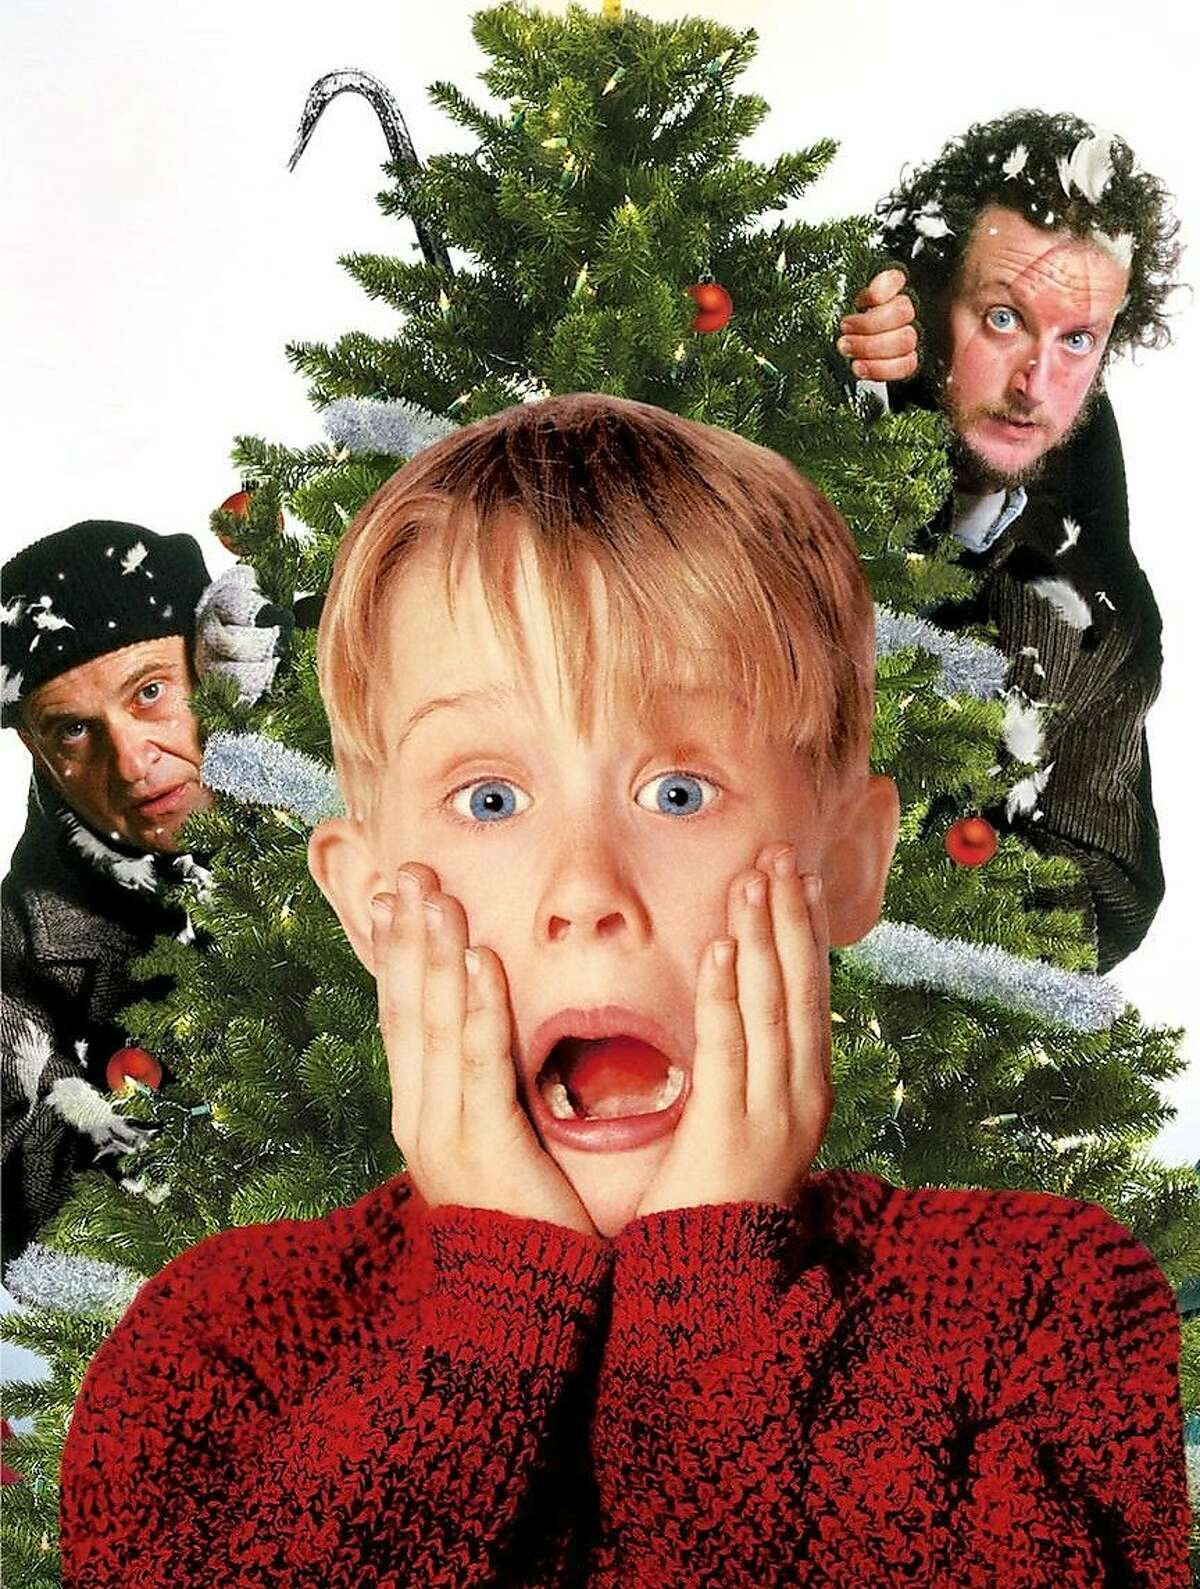 Home Alone (November 16, 1990) The first of a three film series that redefined Christmas for a generation, Home Alone paved the way for an entire decade of films where young protagonists went unsupervised and ate like pigs amidst foiling the plans of evil adults. It's also the reason why an entire generation grew up with outsized ideas about their skill in home invasion defense.